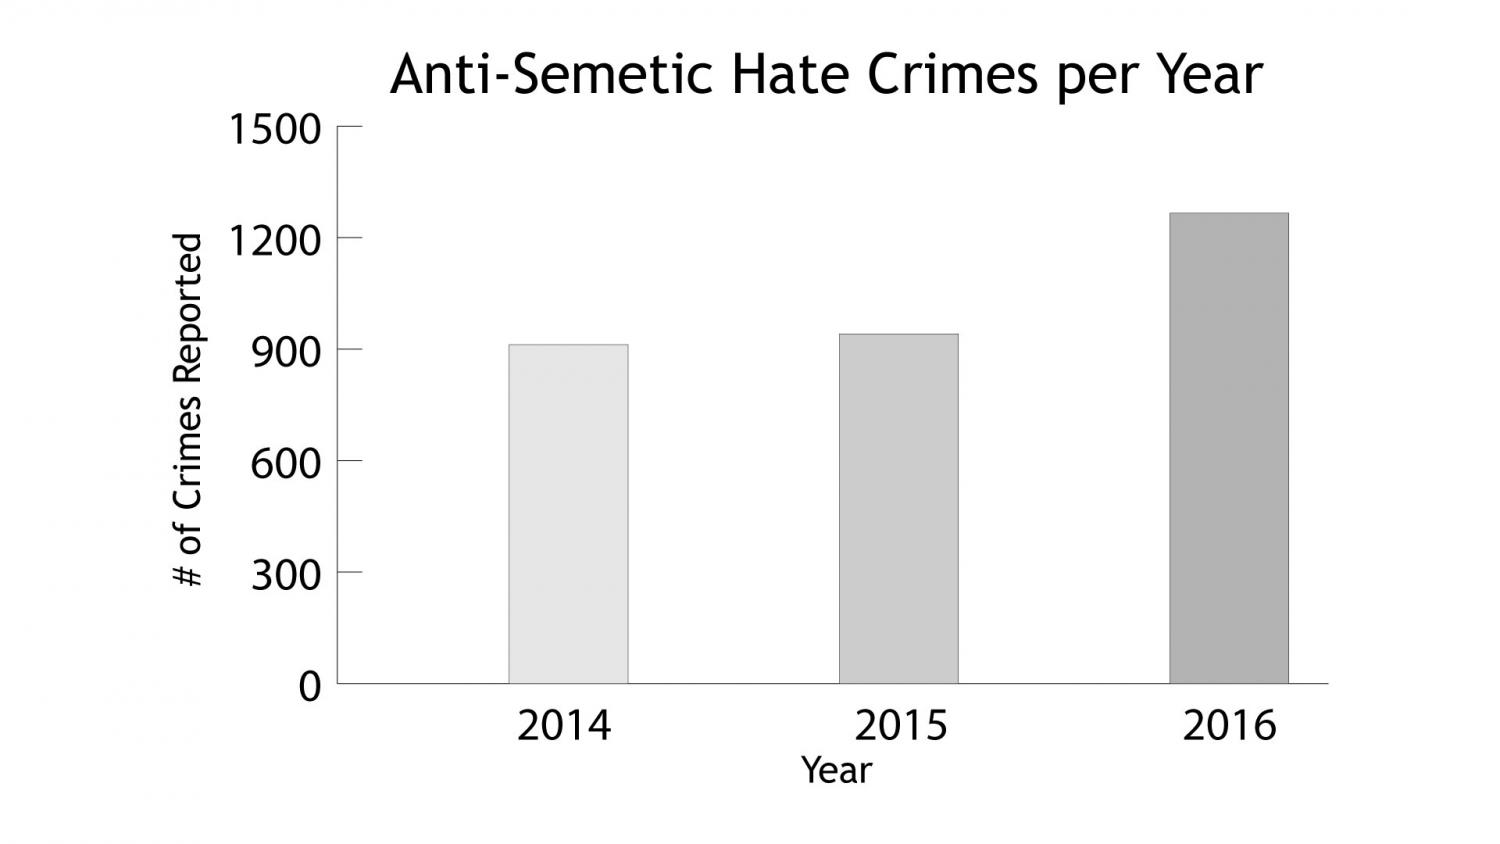 There is a very small difference between 2014 and 2015, however once 2016 hit the hate-crimes soared. More than 200 of the crimes happened after Donald Trump's election, and most of those were done in his name. Trump has said 'Sometimes it's the reverse, to make people — or to make others — look bad,' in response to the rise in Anti-Semitism. He thinks that the bomb threats were made by Jewish people, or those who support them, to make him and his supporters look bad.